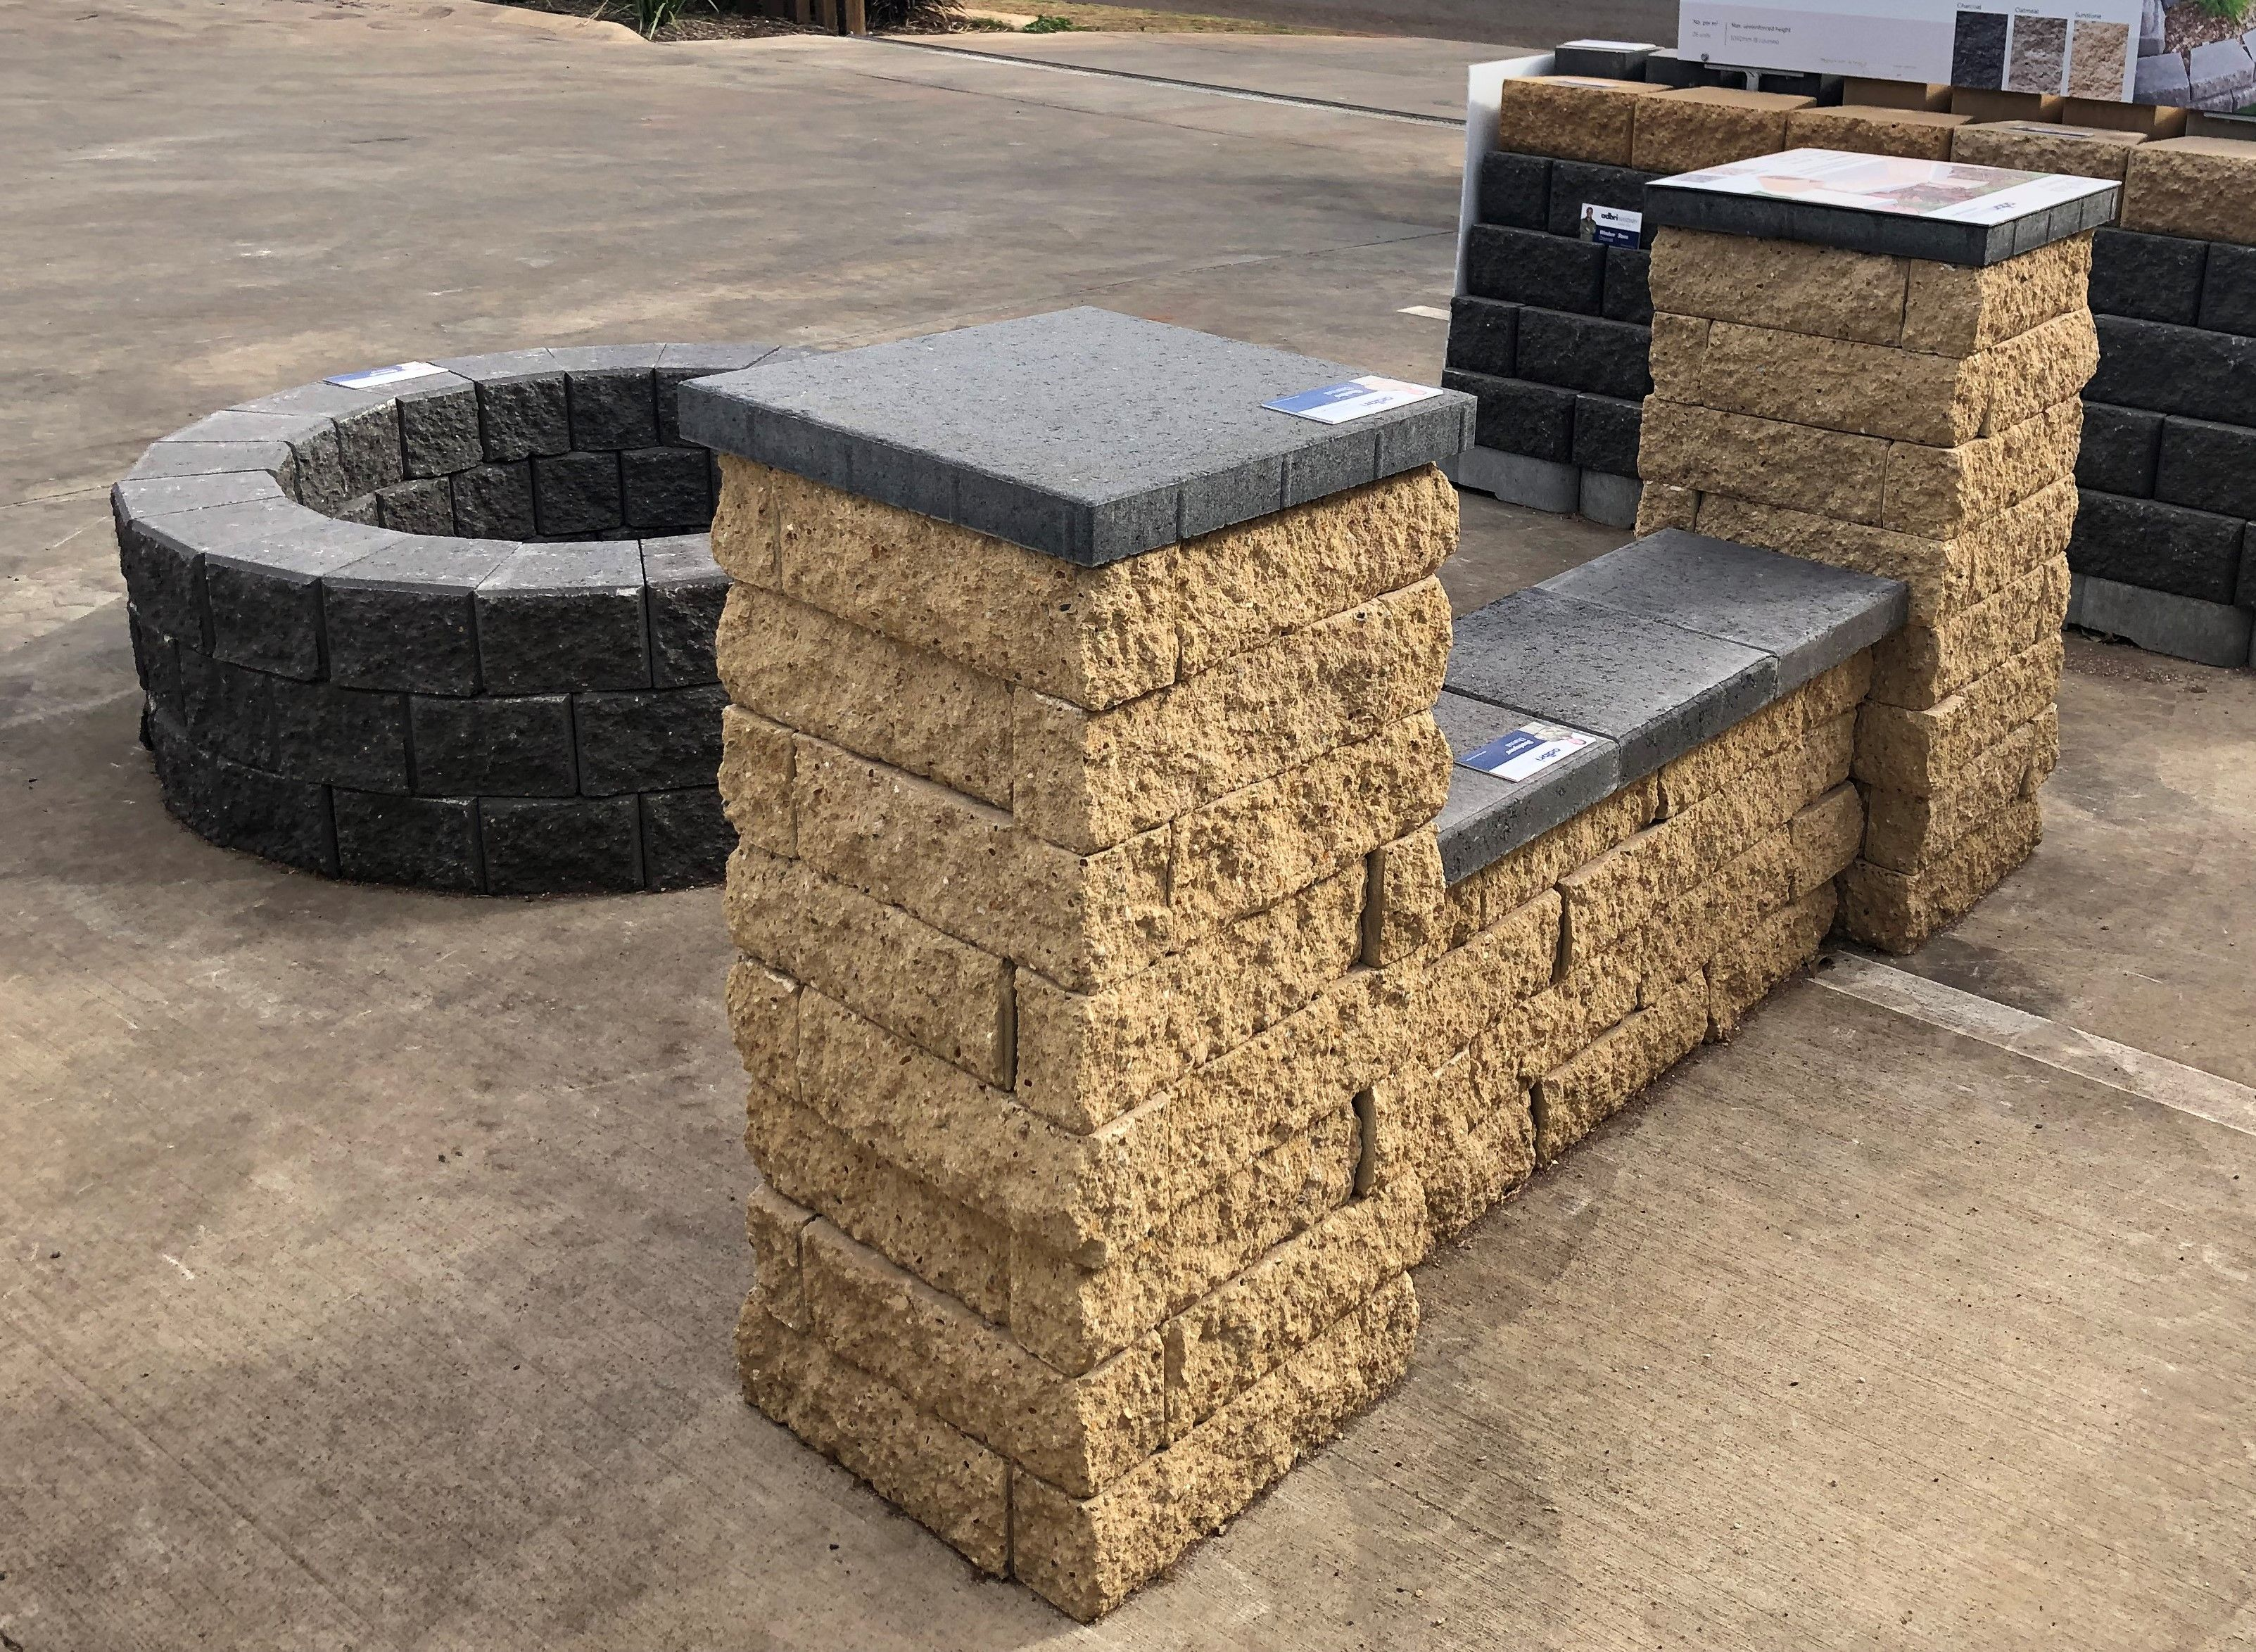 Build A Bench Seat In Your Backyard To Take Advantage Of The Winter Sun Diy Easy Use Retaining Wall Blocks And P Paver Landscaping Supplies Brick